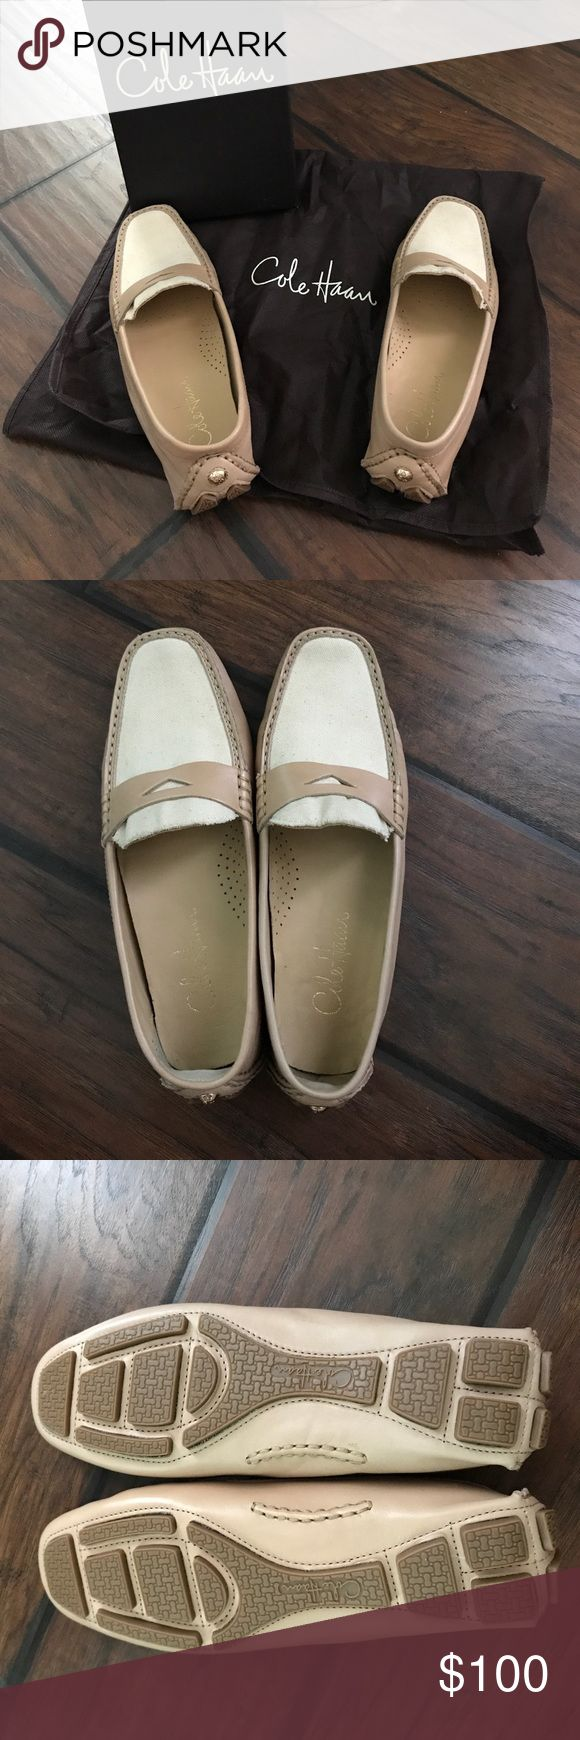 New Cole Haan Trillby Driver Loafers - Size 7.5 Brand New Women's Cole Haan Trillby Driver Penny Loafers • Size 7.5 • Rubber Outsole • Beige/Natural Color • Trillby is the perfect driving shoe for road, sidewalk and weekend • Will ship with shoe box and dust bag! Cole Haan Shoes Flats & Loafers